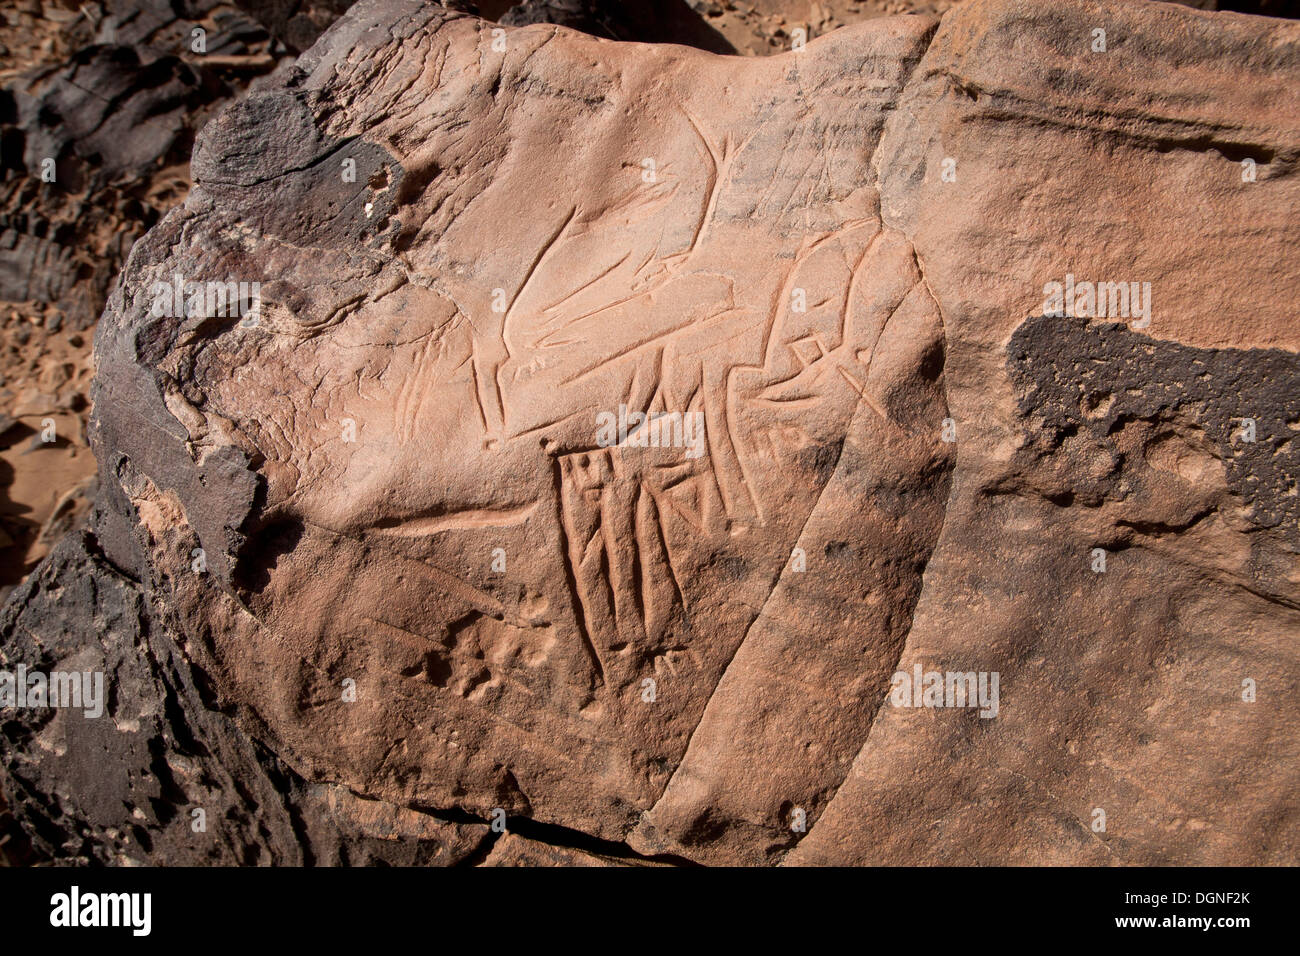 Prehistoric rock carvings at Oued Mestakou on the Tata to Akka road in Morocco. rock-art - Stock Image